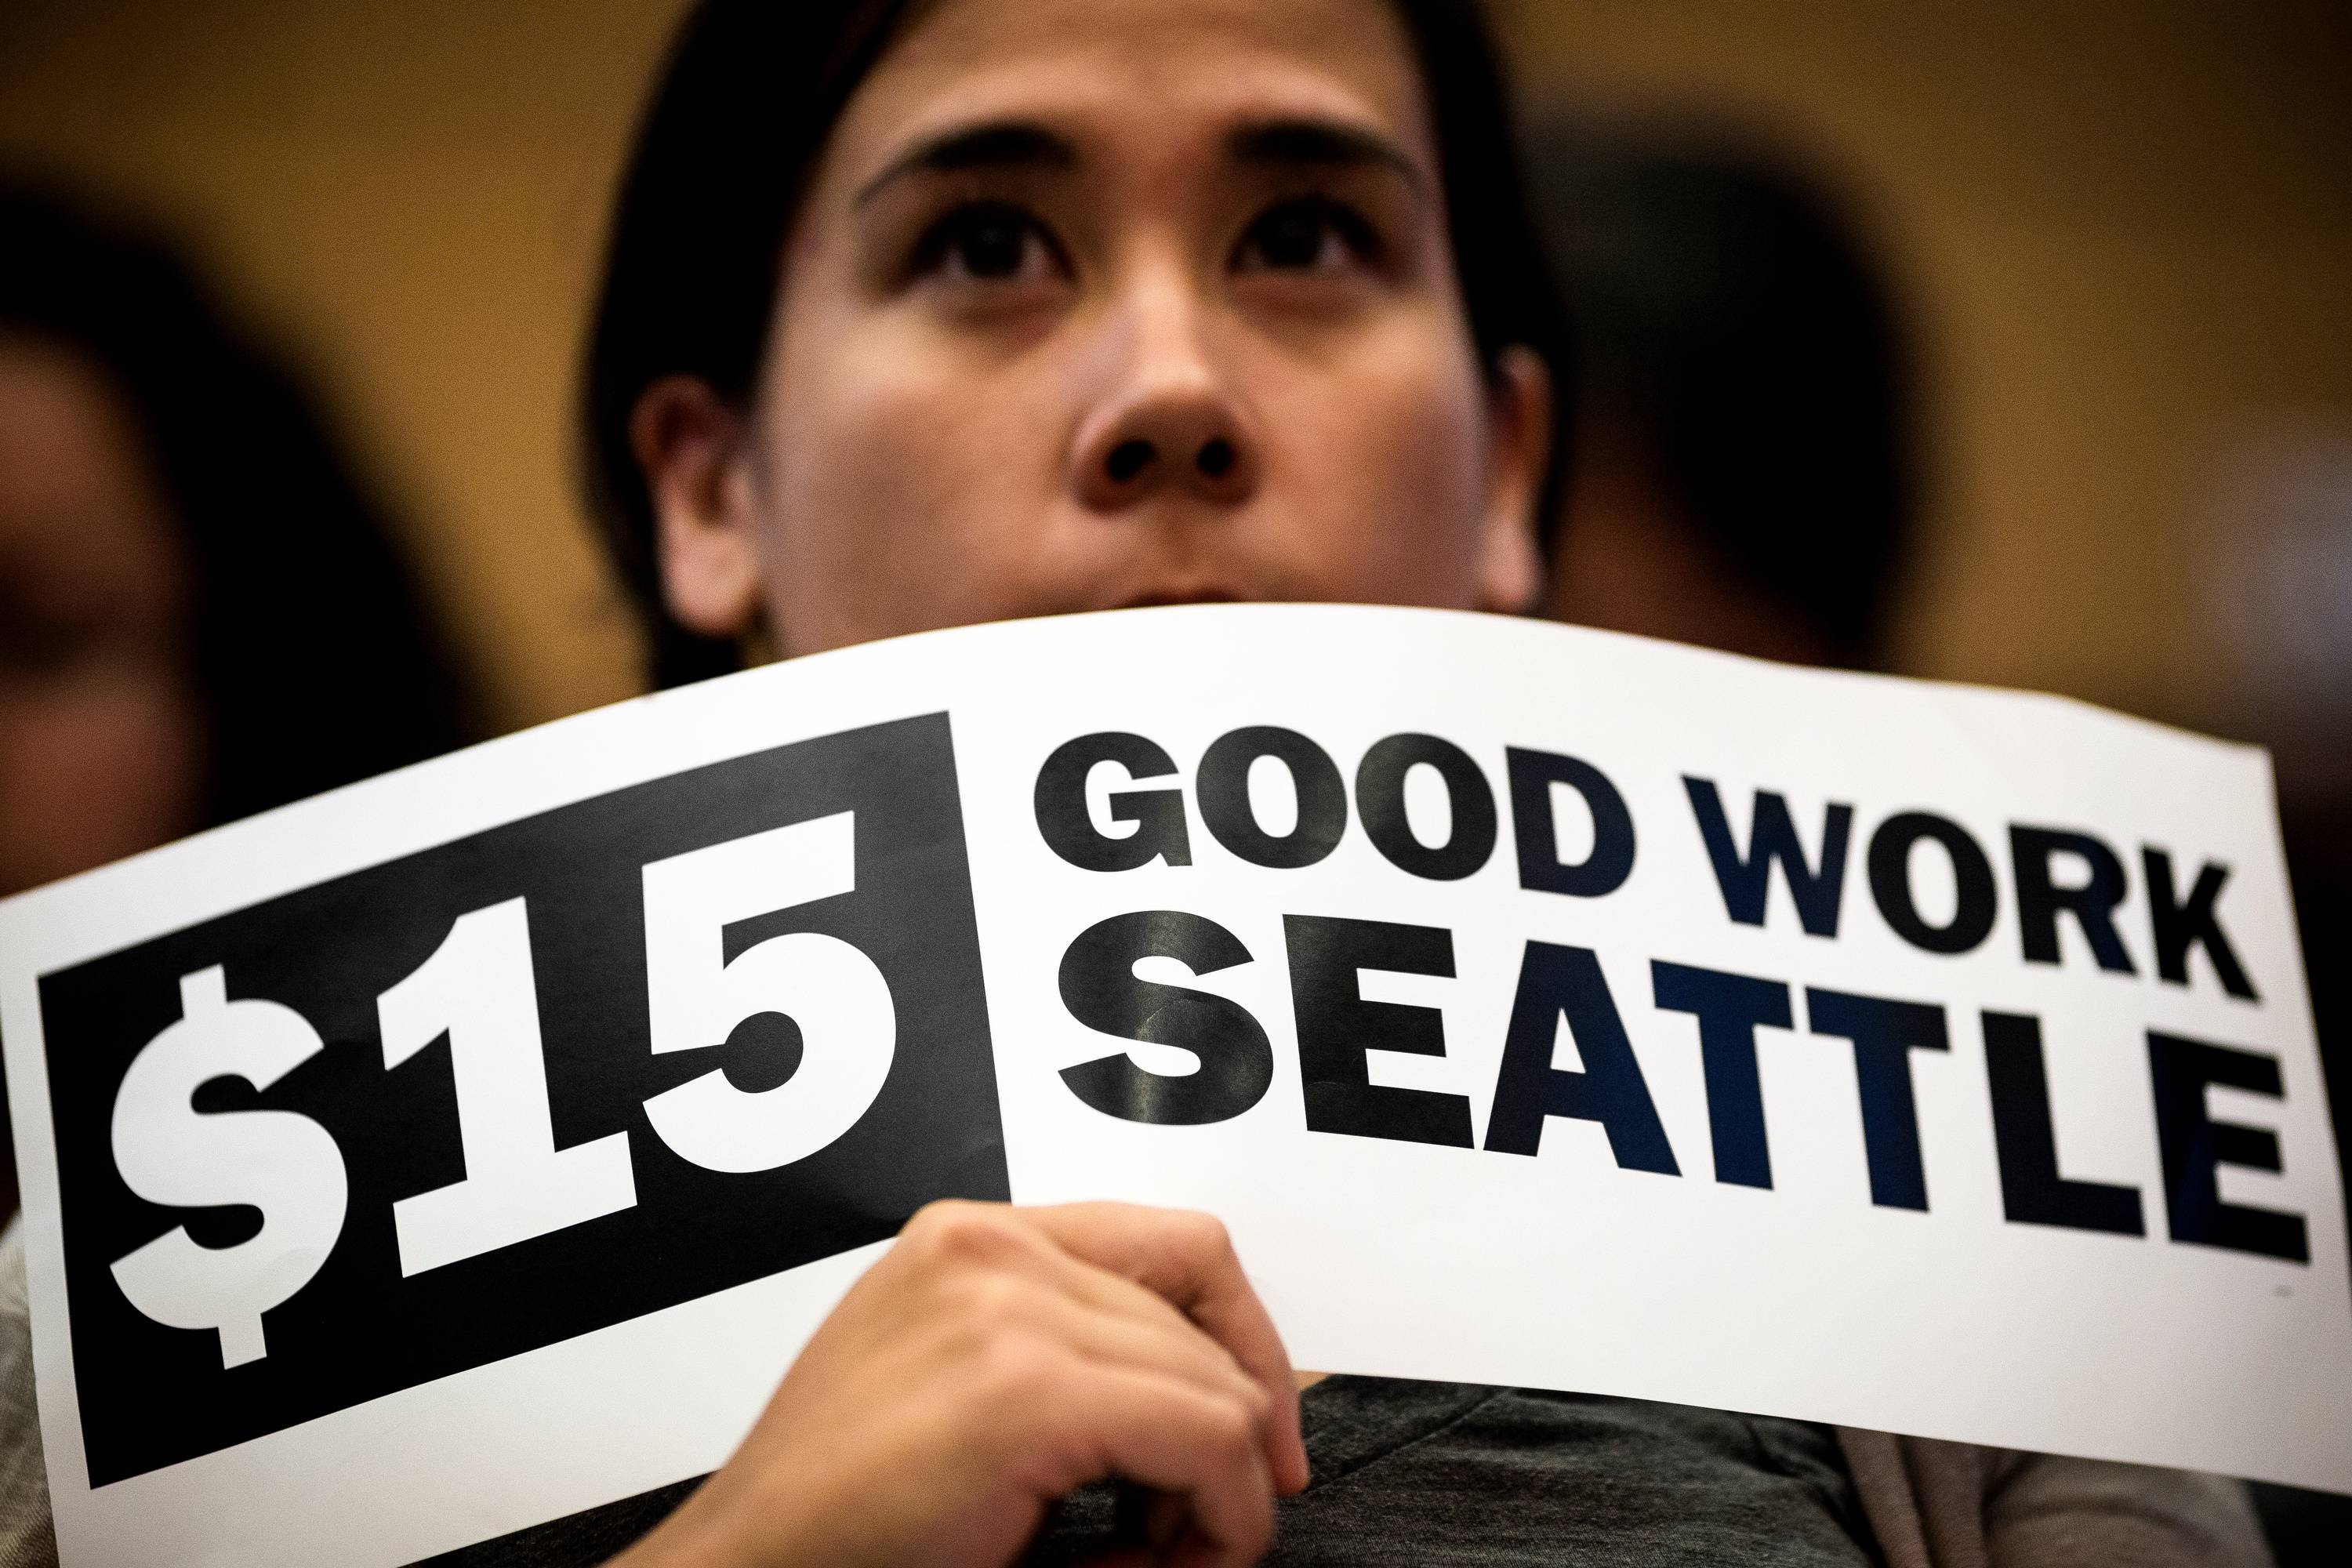 Phased in over the next seven years, Seattle will have the highest minimum wage in America at $15.